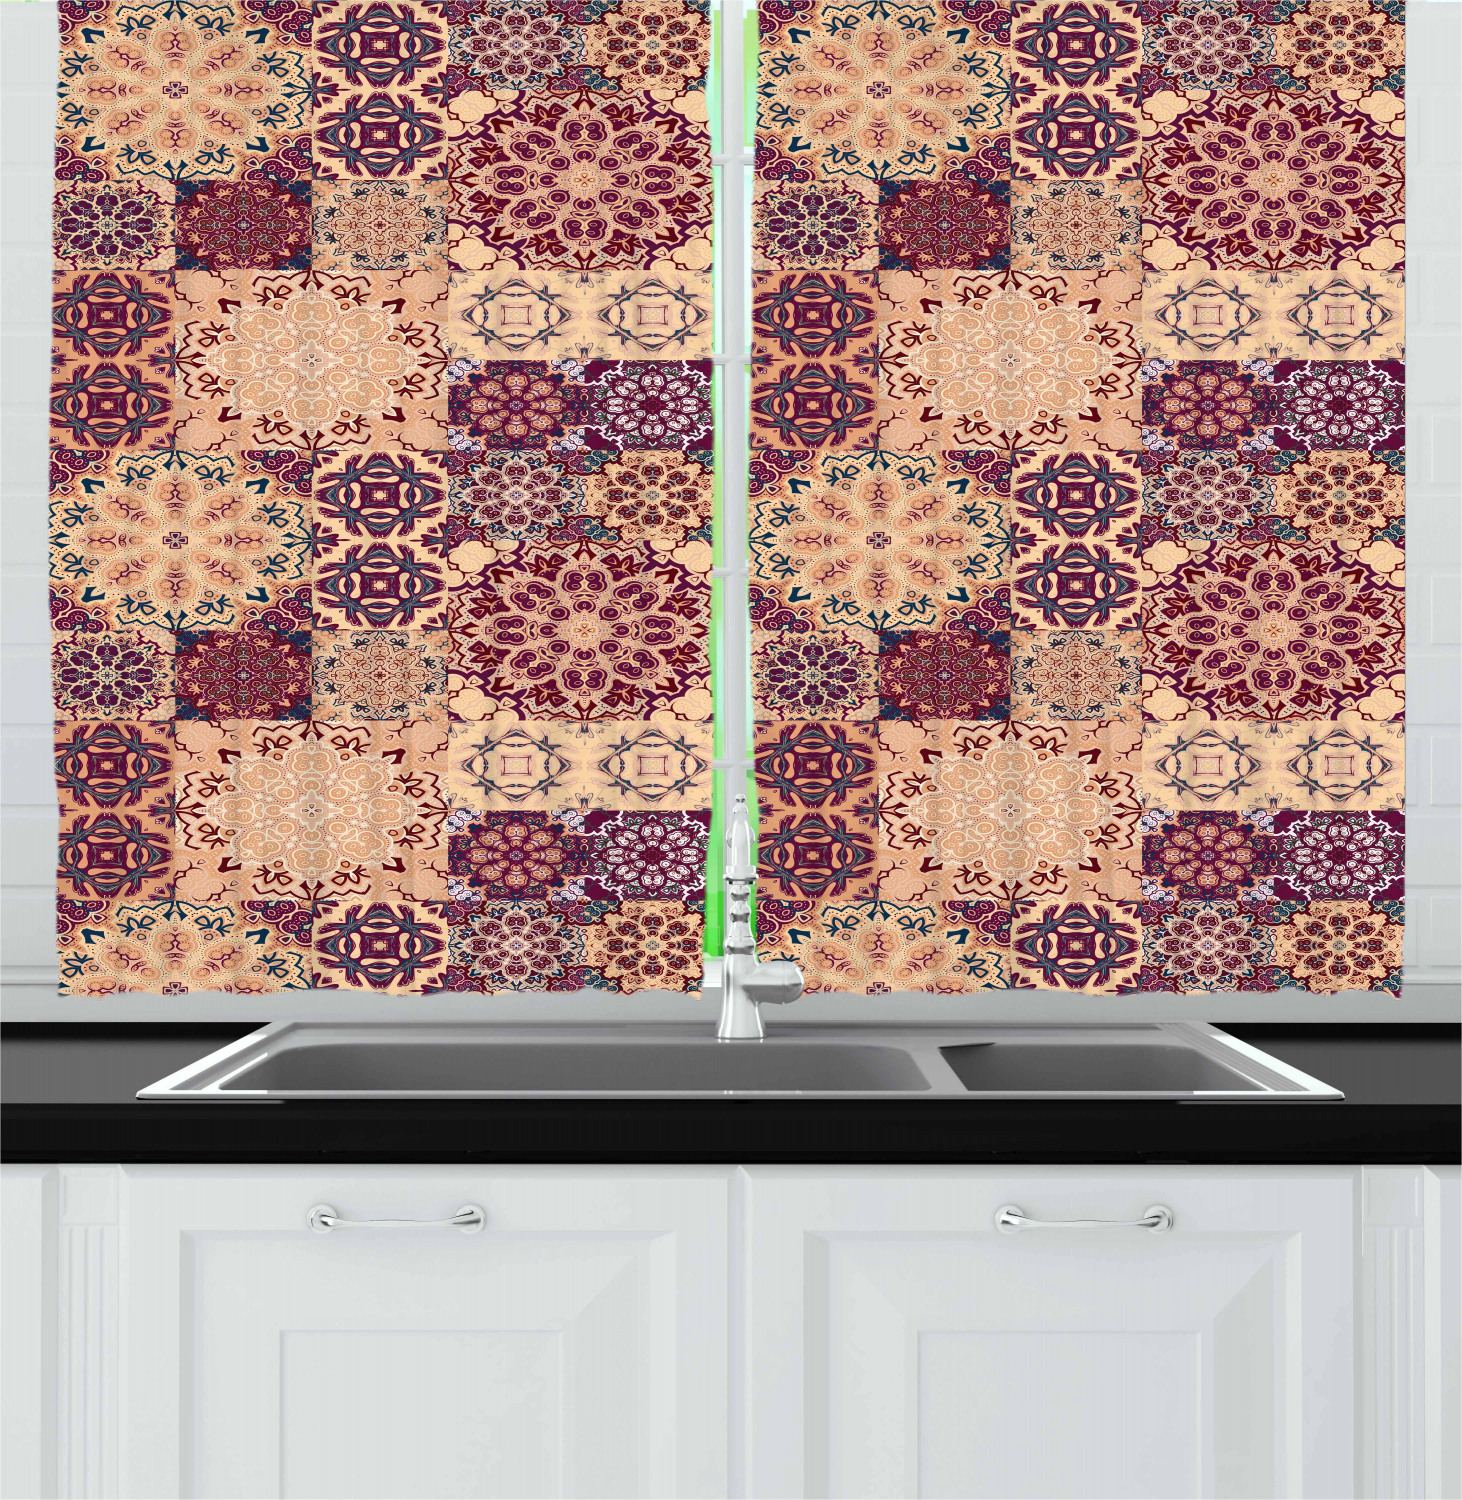 Eastern Moroccan Kitchen Curtains 2 Panel Set Window